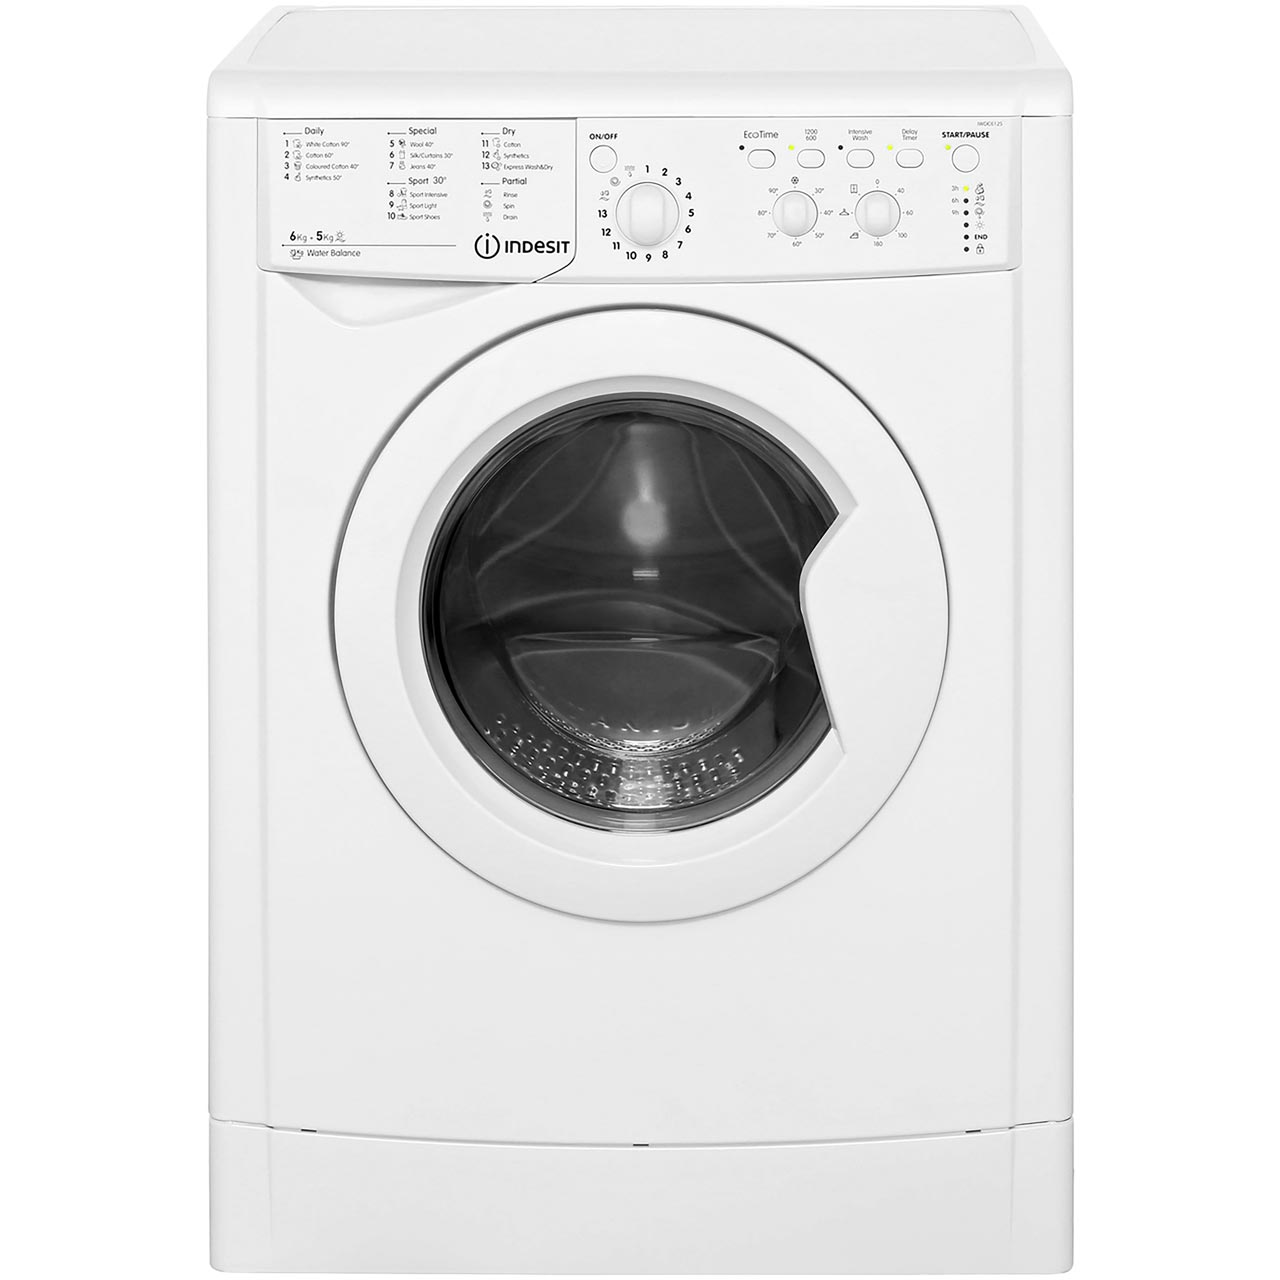 Indesit Iwdc 6125 Details About Indesit Iwdc6125 Eco Time Free Standing 6kg B Washer Dryer White New From Ao